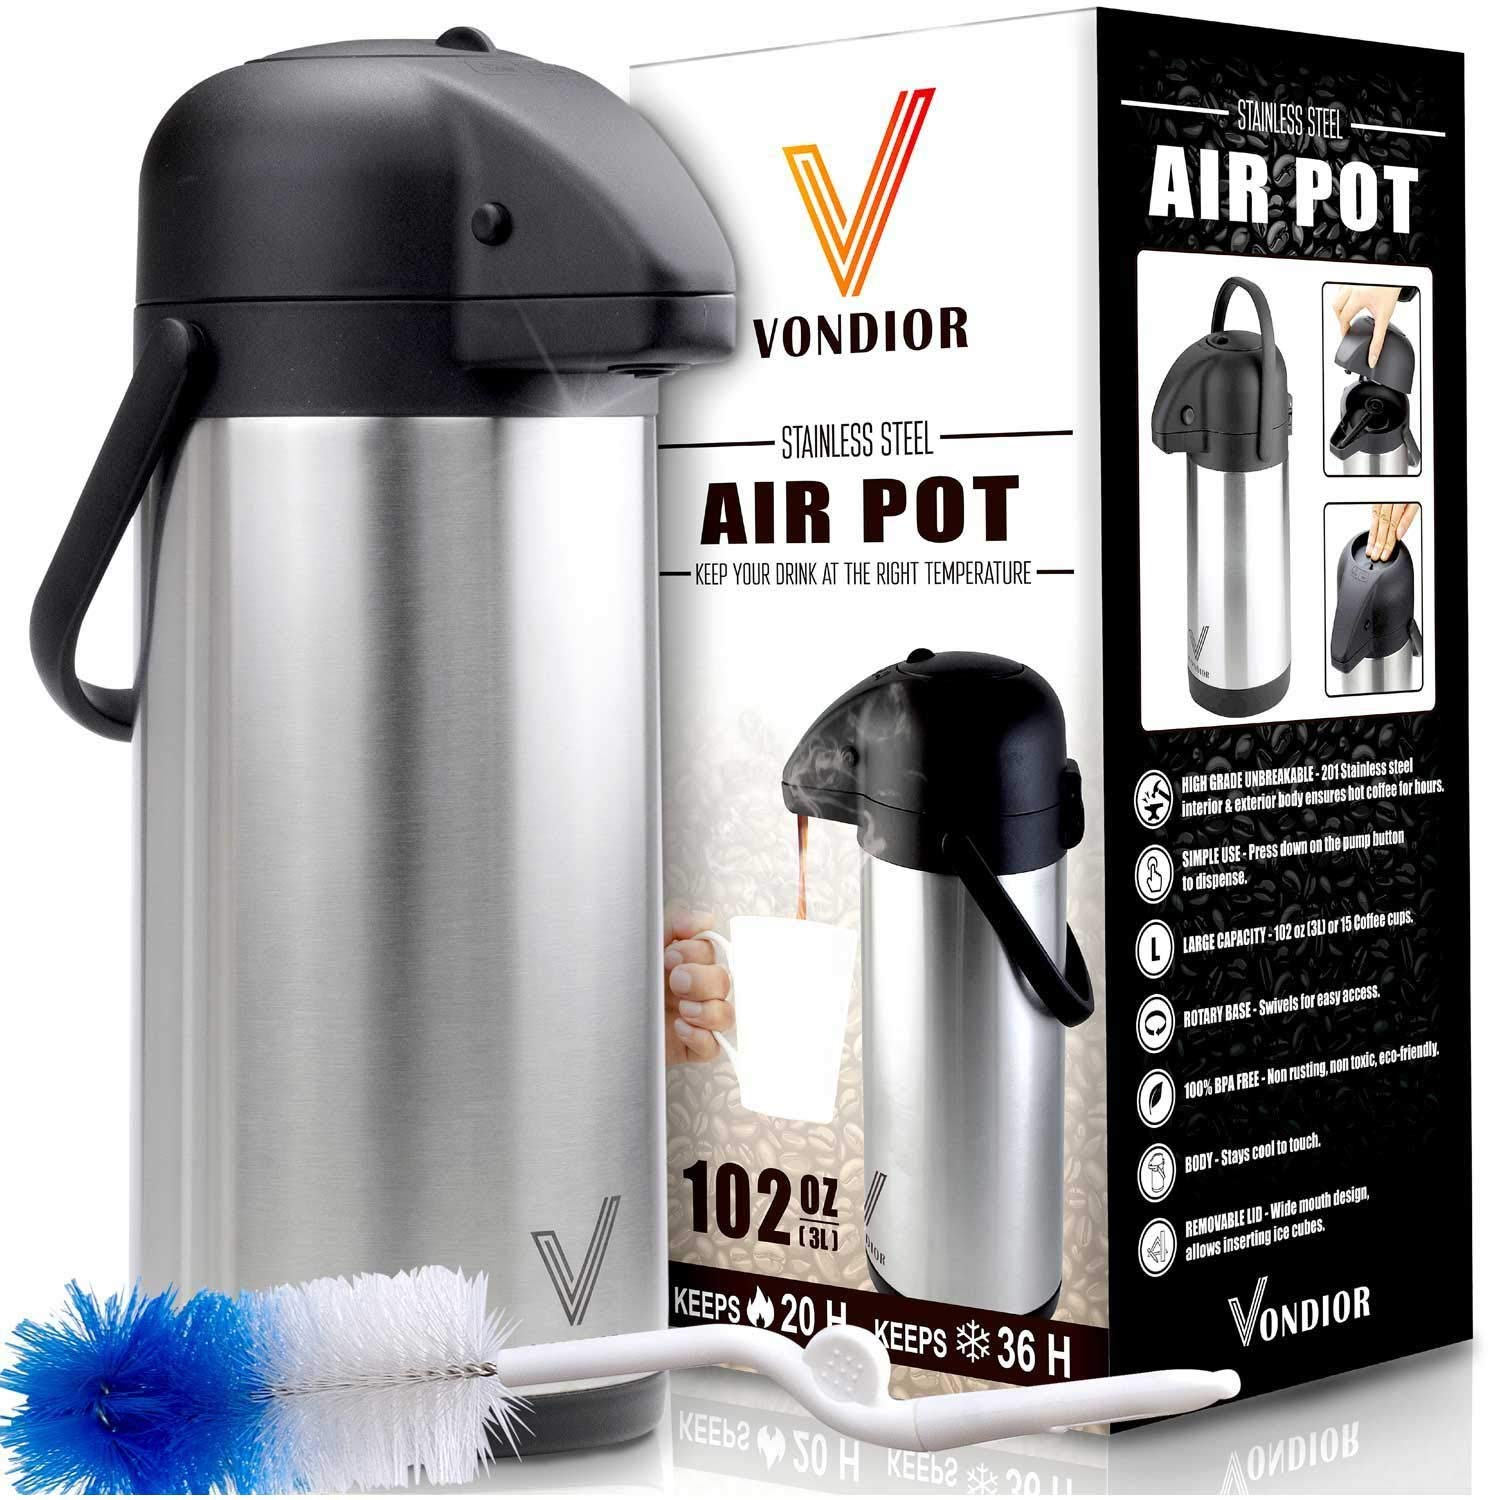 Thermal Coffee Airpot - Beverage Dispenser By Vondior